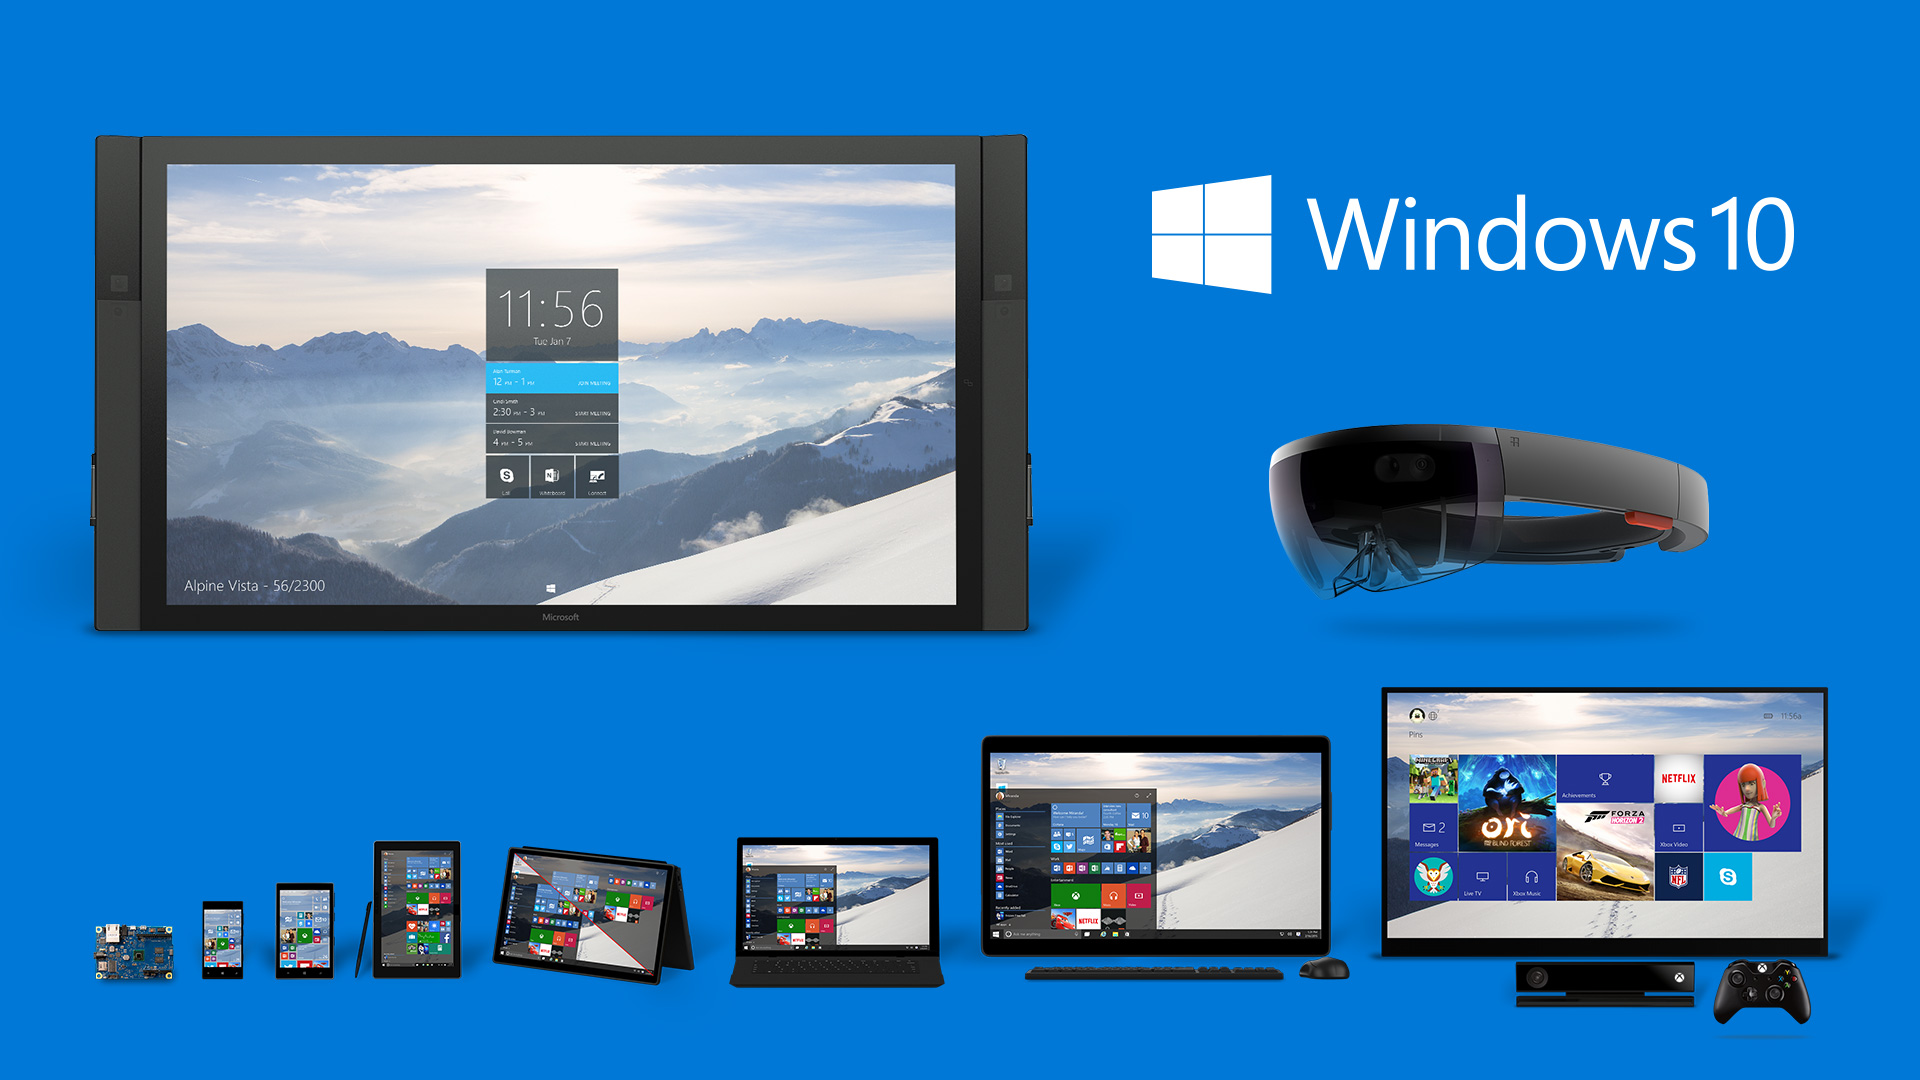 http://www.windowsblogitalia.com/wp-content/uploads/2015/01/Win10_Windows_ProductFamily_Web.jpg